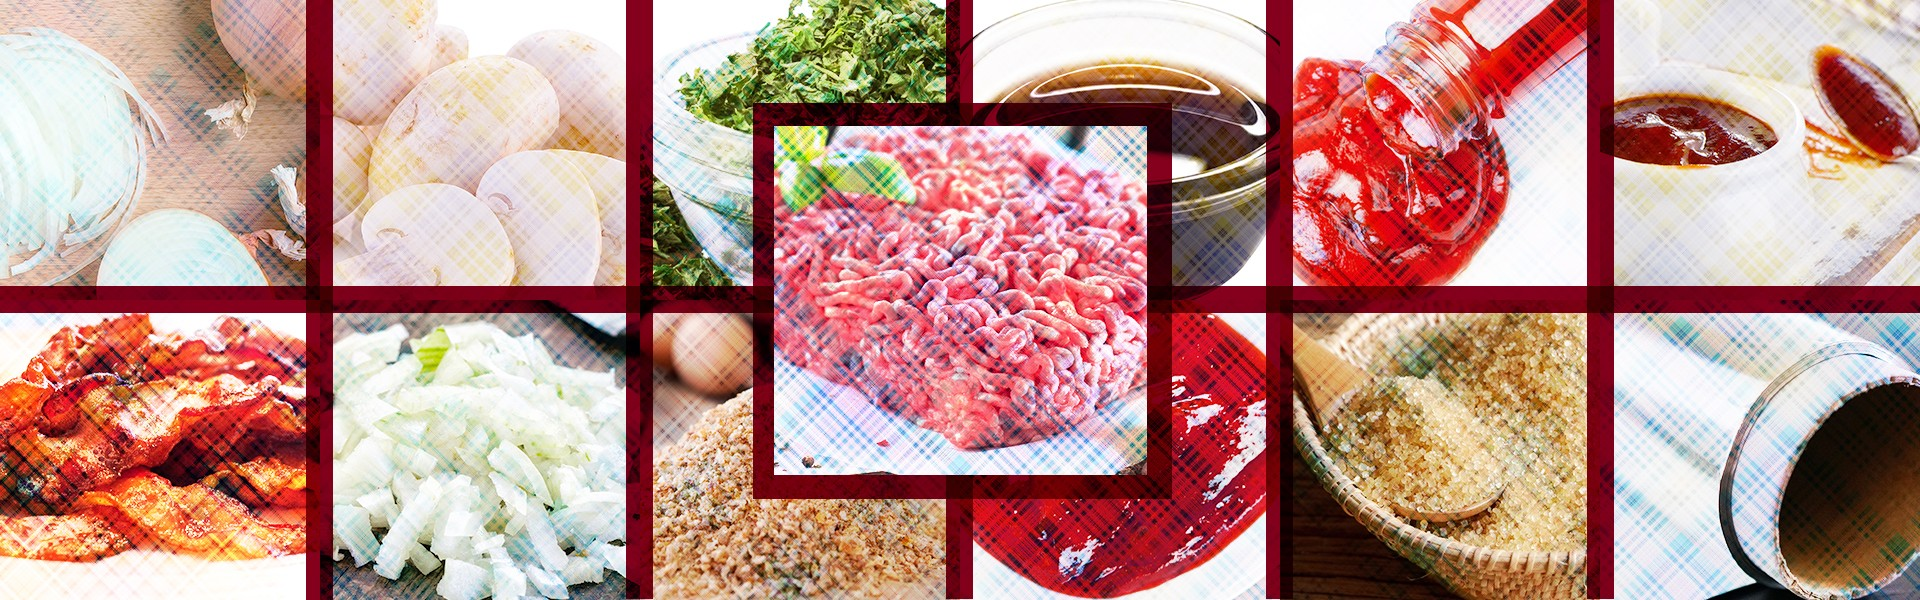 Ingredients to make Bacon wrapped onion meatballs